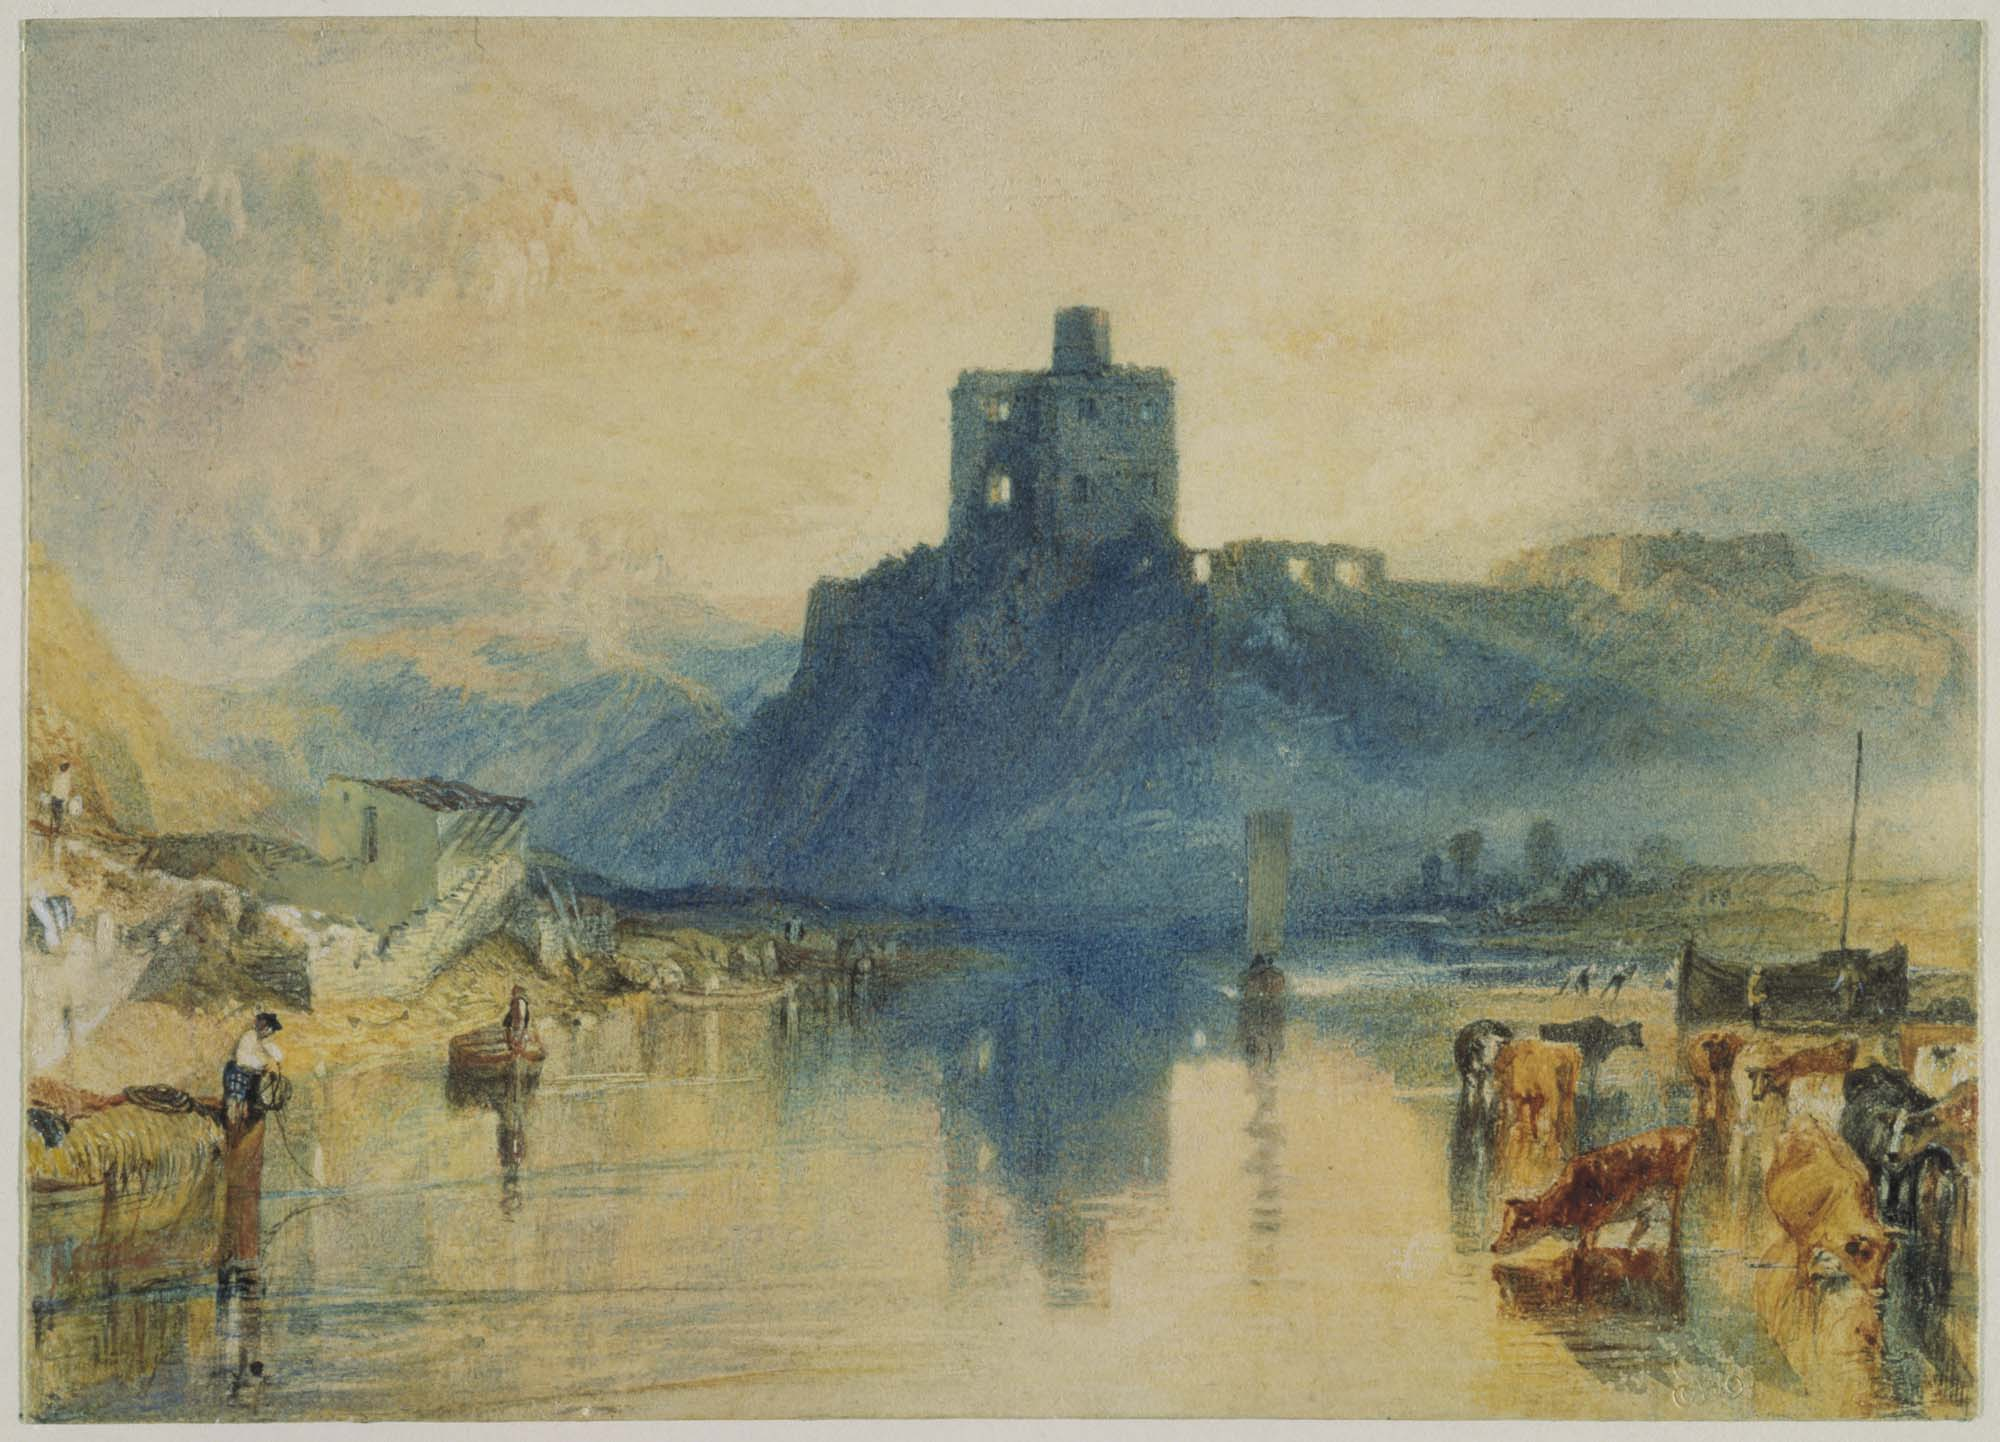 a painting showing a castle ruin reflected across a lake